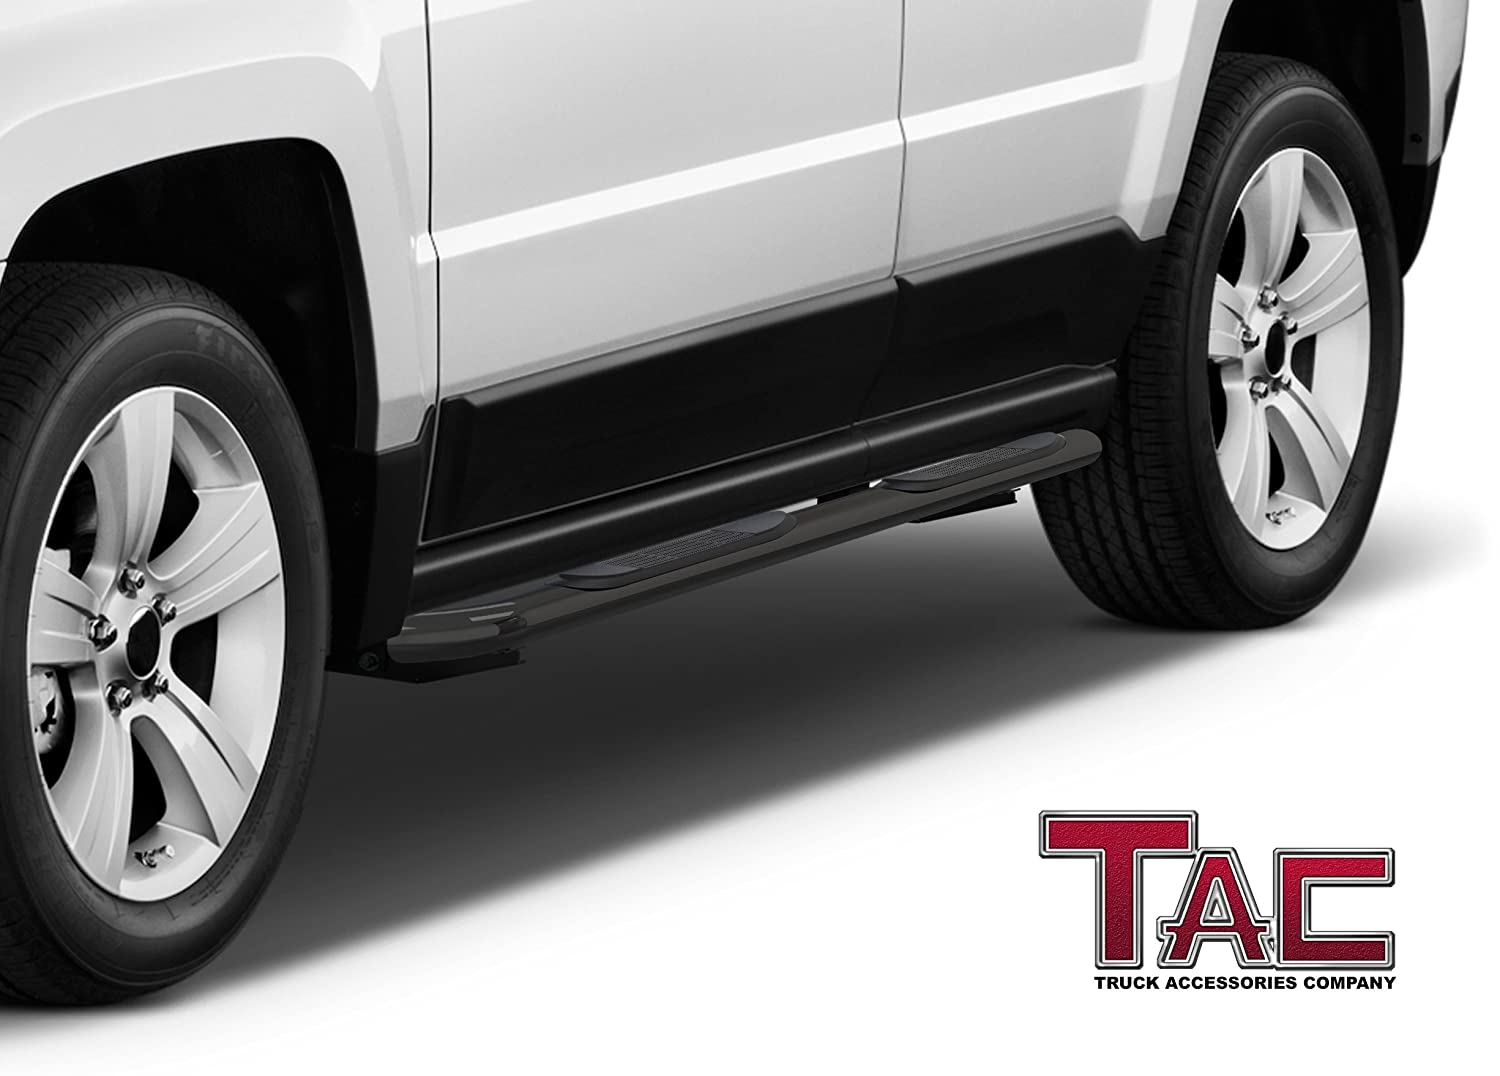 2 Pieces Running Boards TAC Side Steps Custom Fit 2007-2016 Jeep Patriot 3 inches Black Side Bars Nerf Bars Step Rails Running Boards Off Road Automotive Exterior Accessories